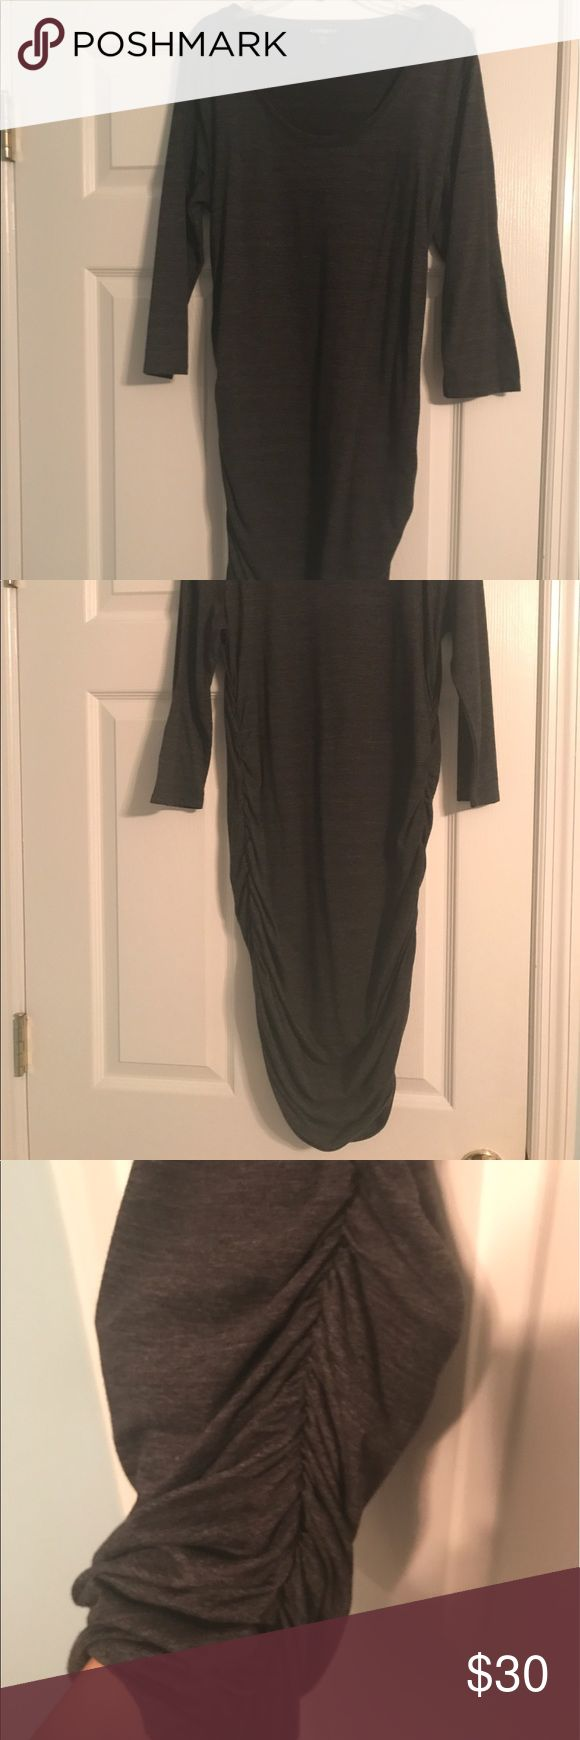 Express Charcoal Grey Dress Tshirt style dress that cinches at the bottom, very figure flattering Express Dresses Midi